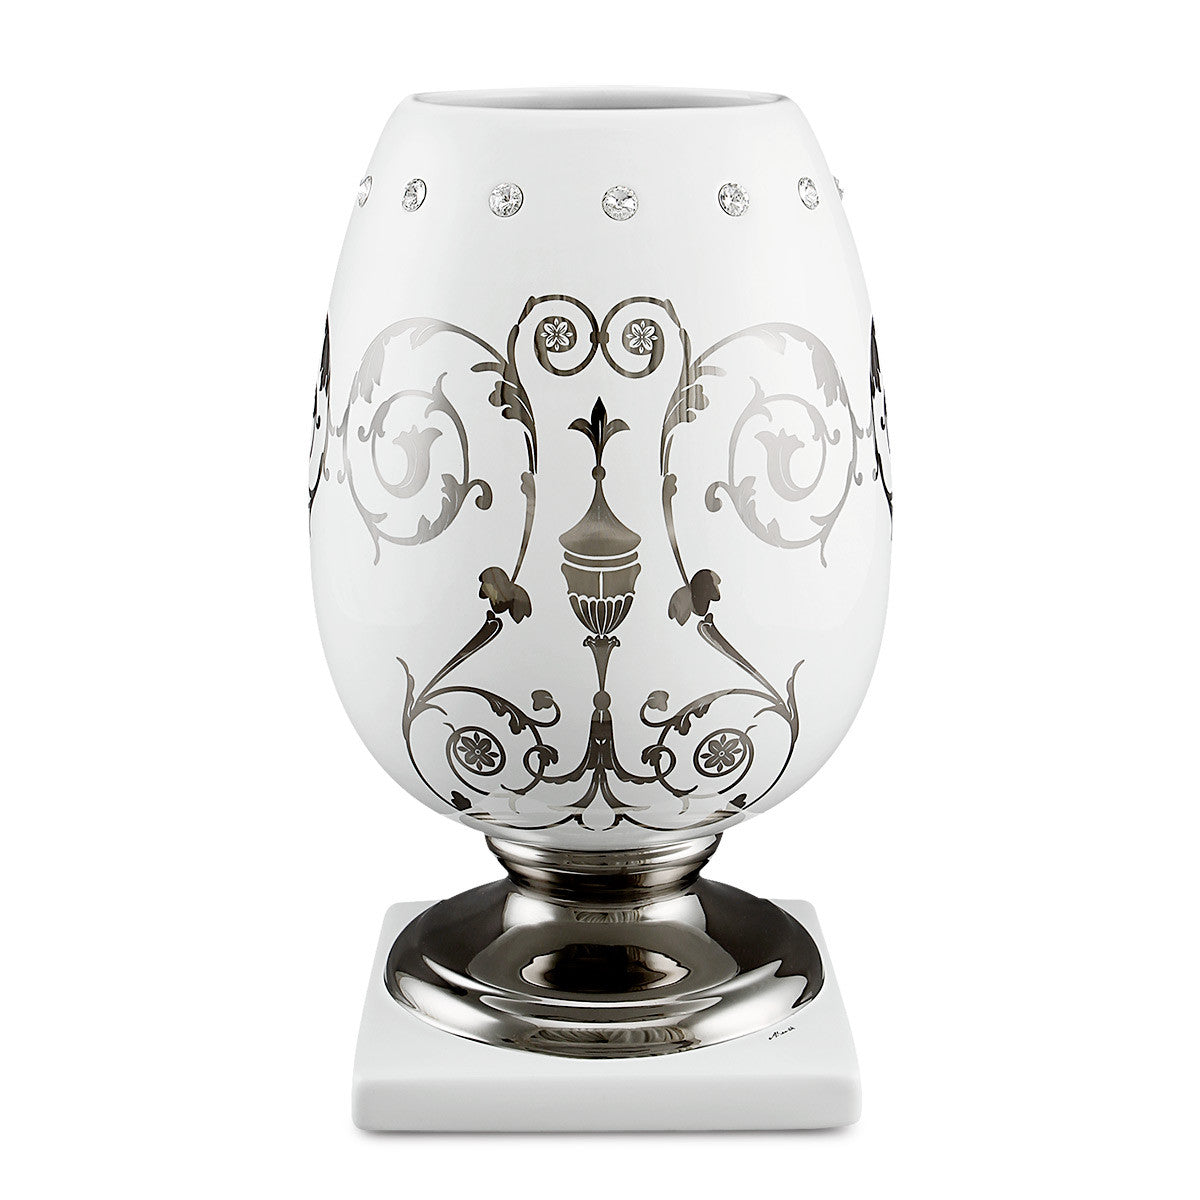 ceramic porcelain vase finished in platinum with imperial design handmade in Italy